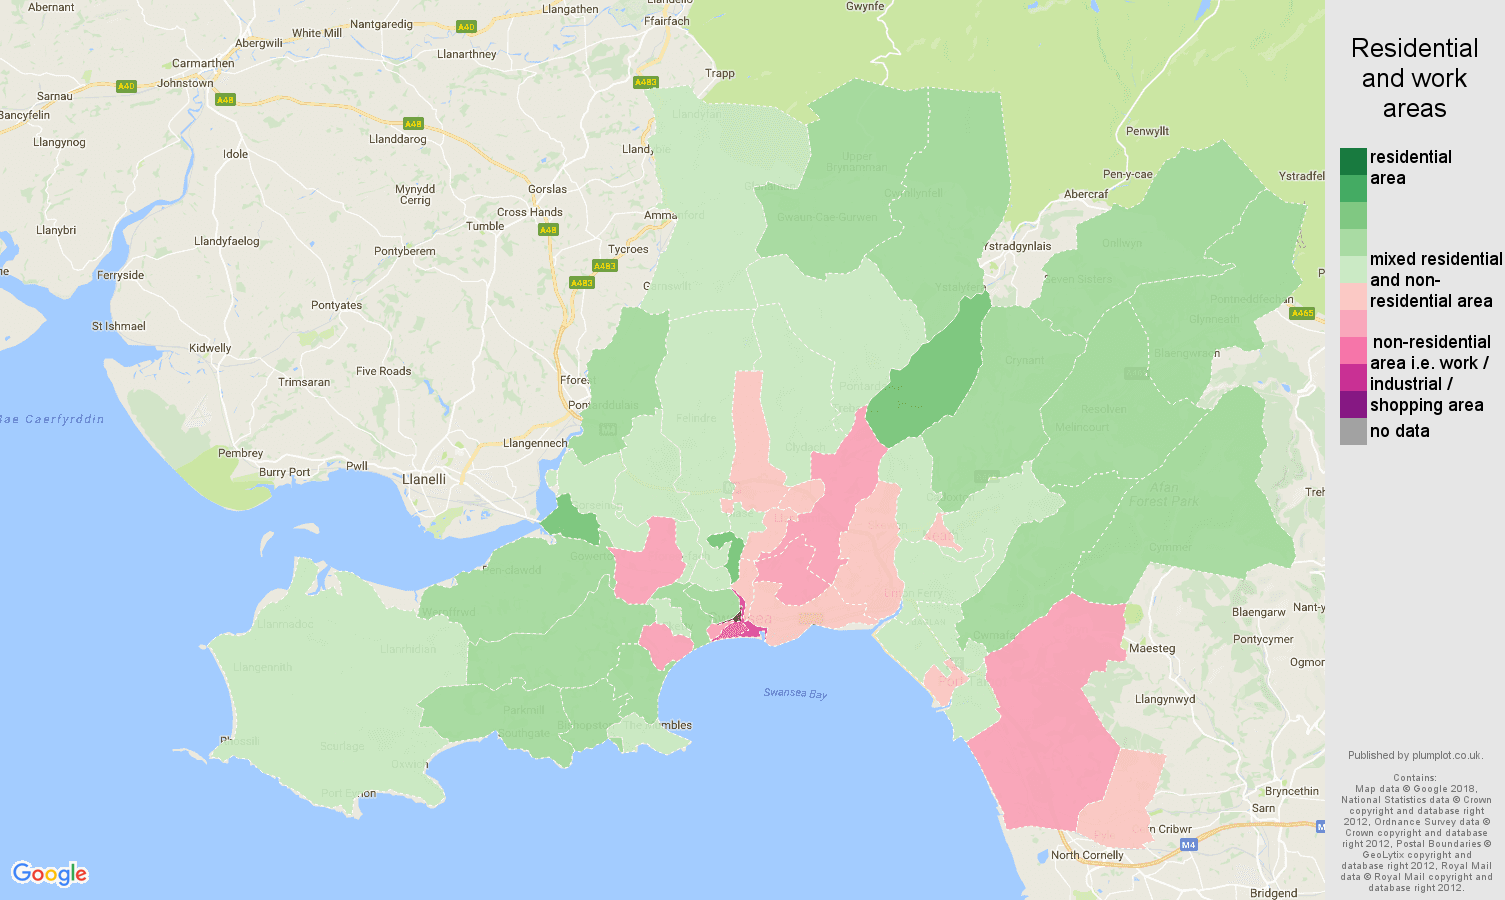 West Glamorgan residential areas map